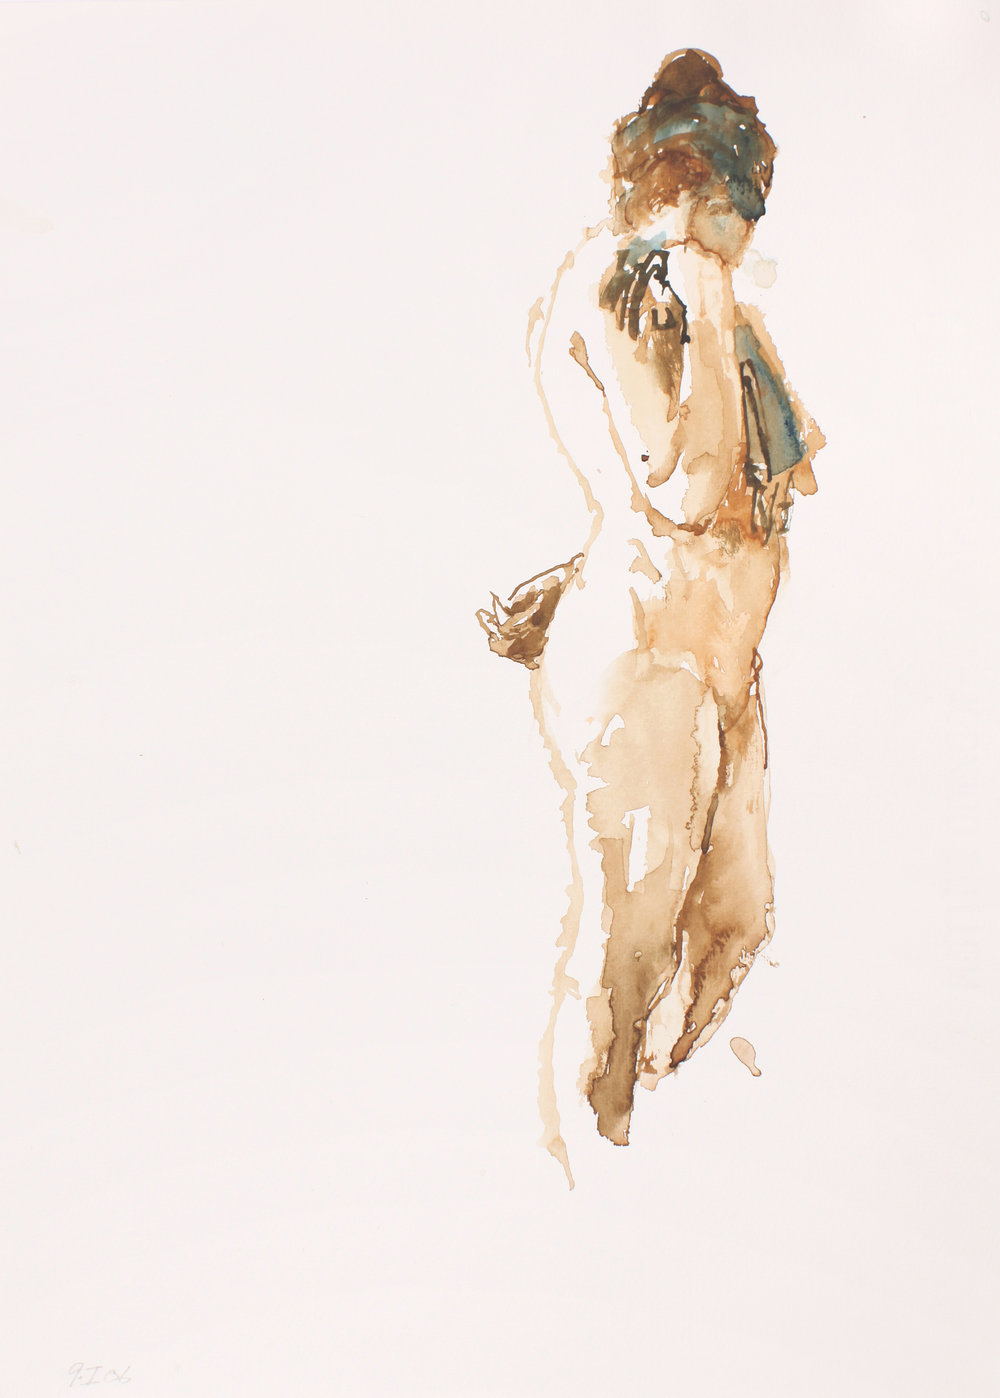 2006_Standing_Nude_Holding_Striped_Scarf_watercolour_and_pencil_on_paper_15x11in_WPF231.jpg